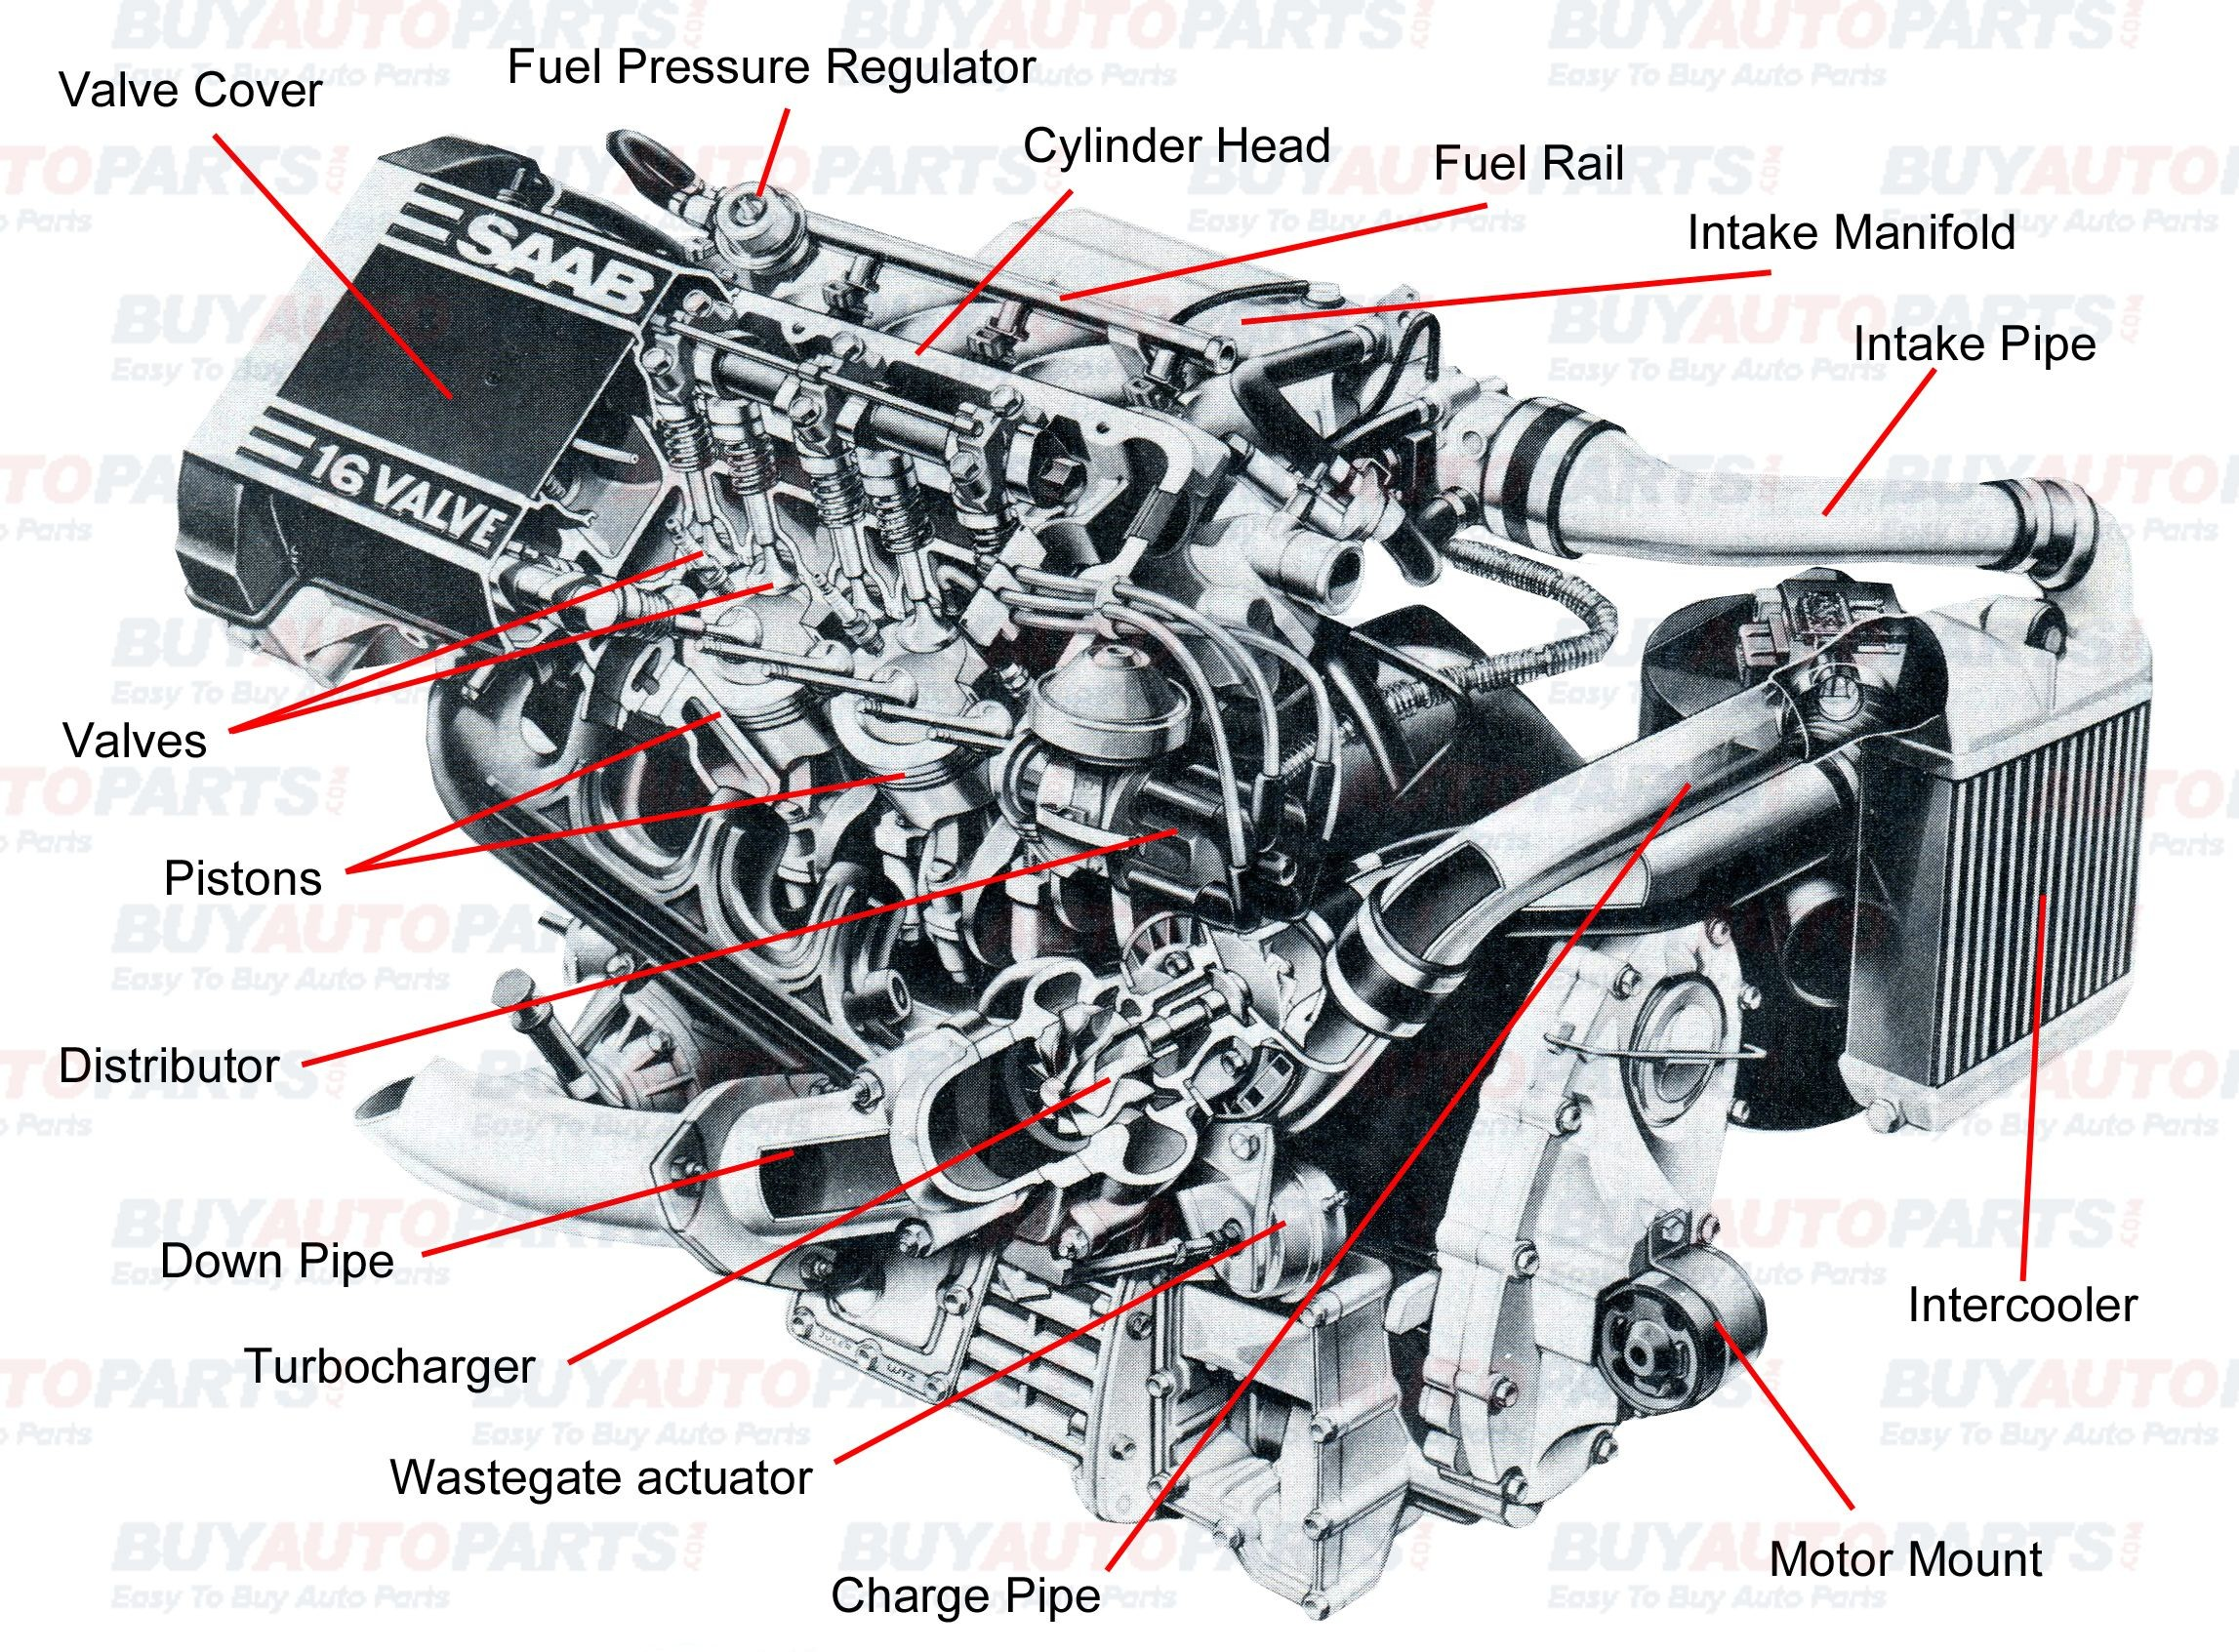 Car Diagram Parts All Internal Bustion Engines Have the Same Basic Ponents the Of Car Diagram Parts